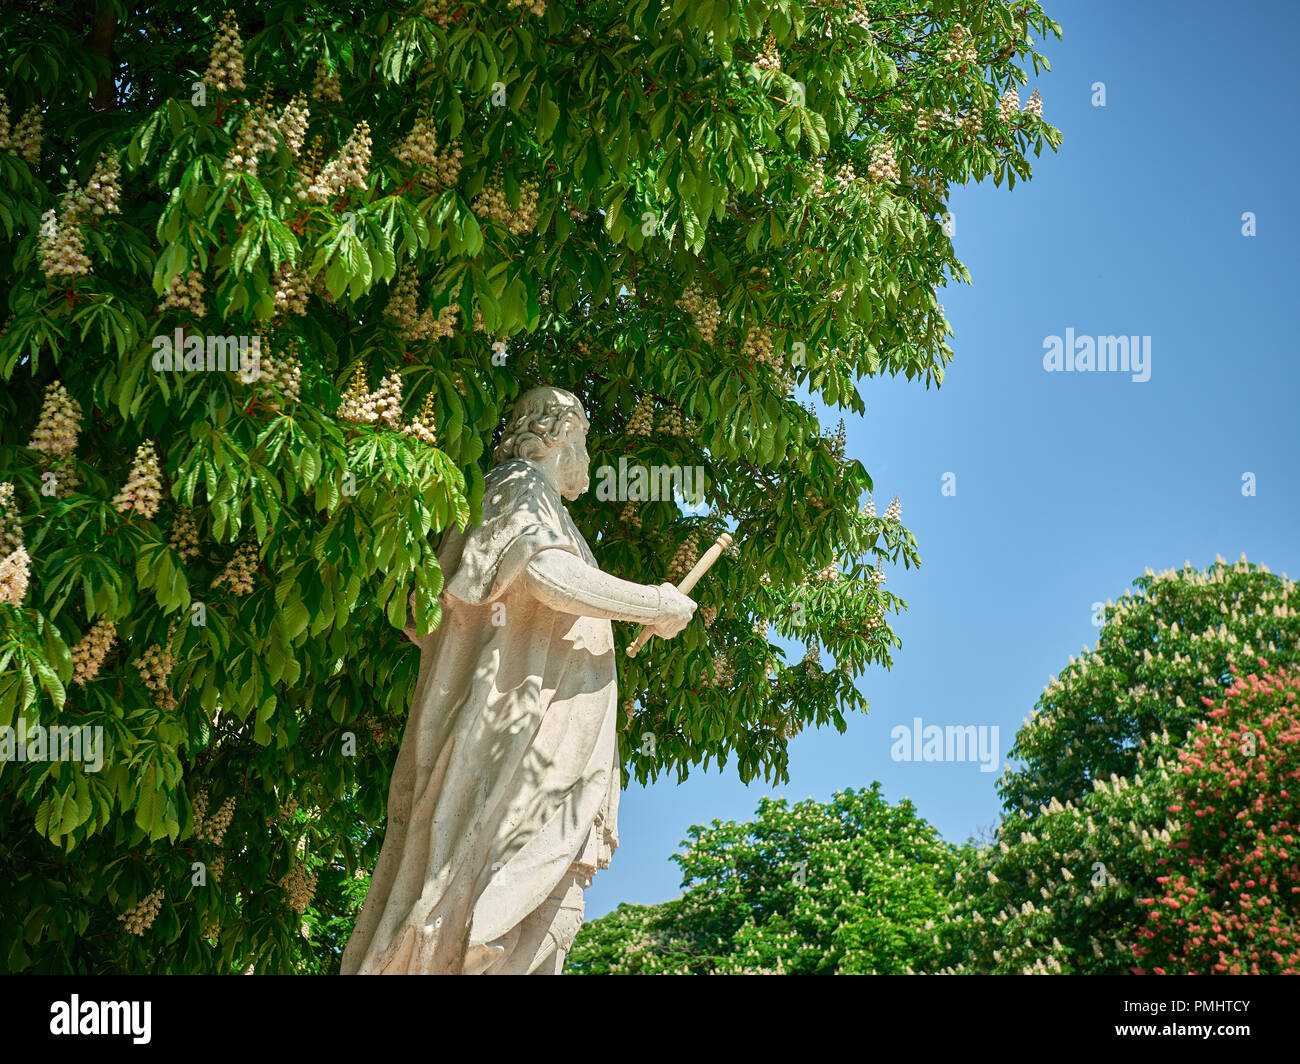 White marble statue in the public park under the blooming chestnut tree in the sunny day - Stock Image